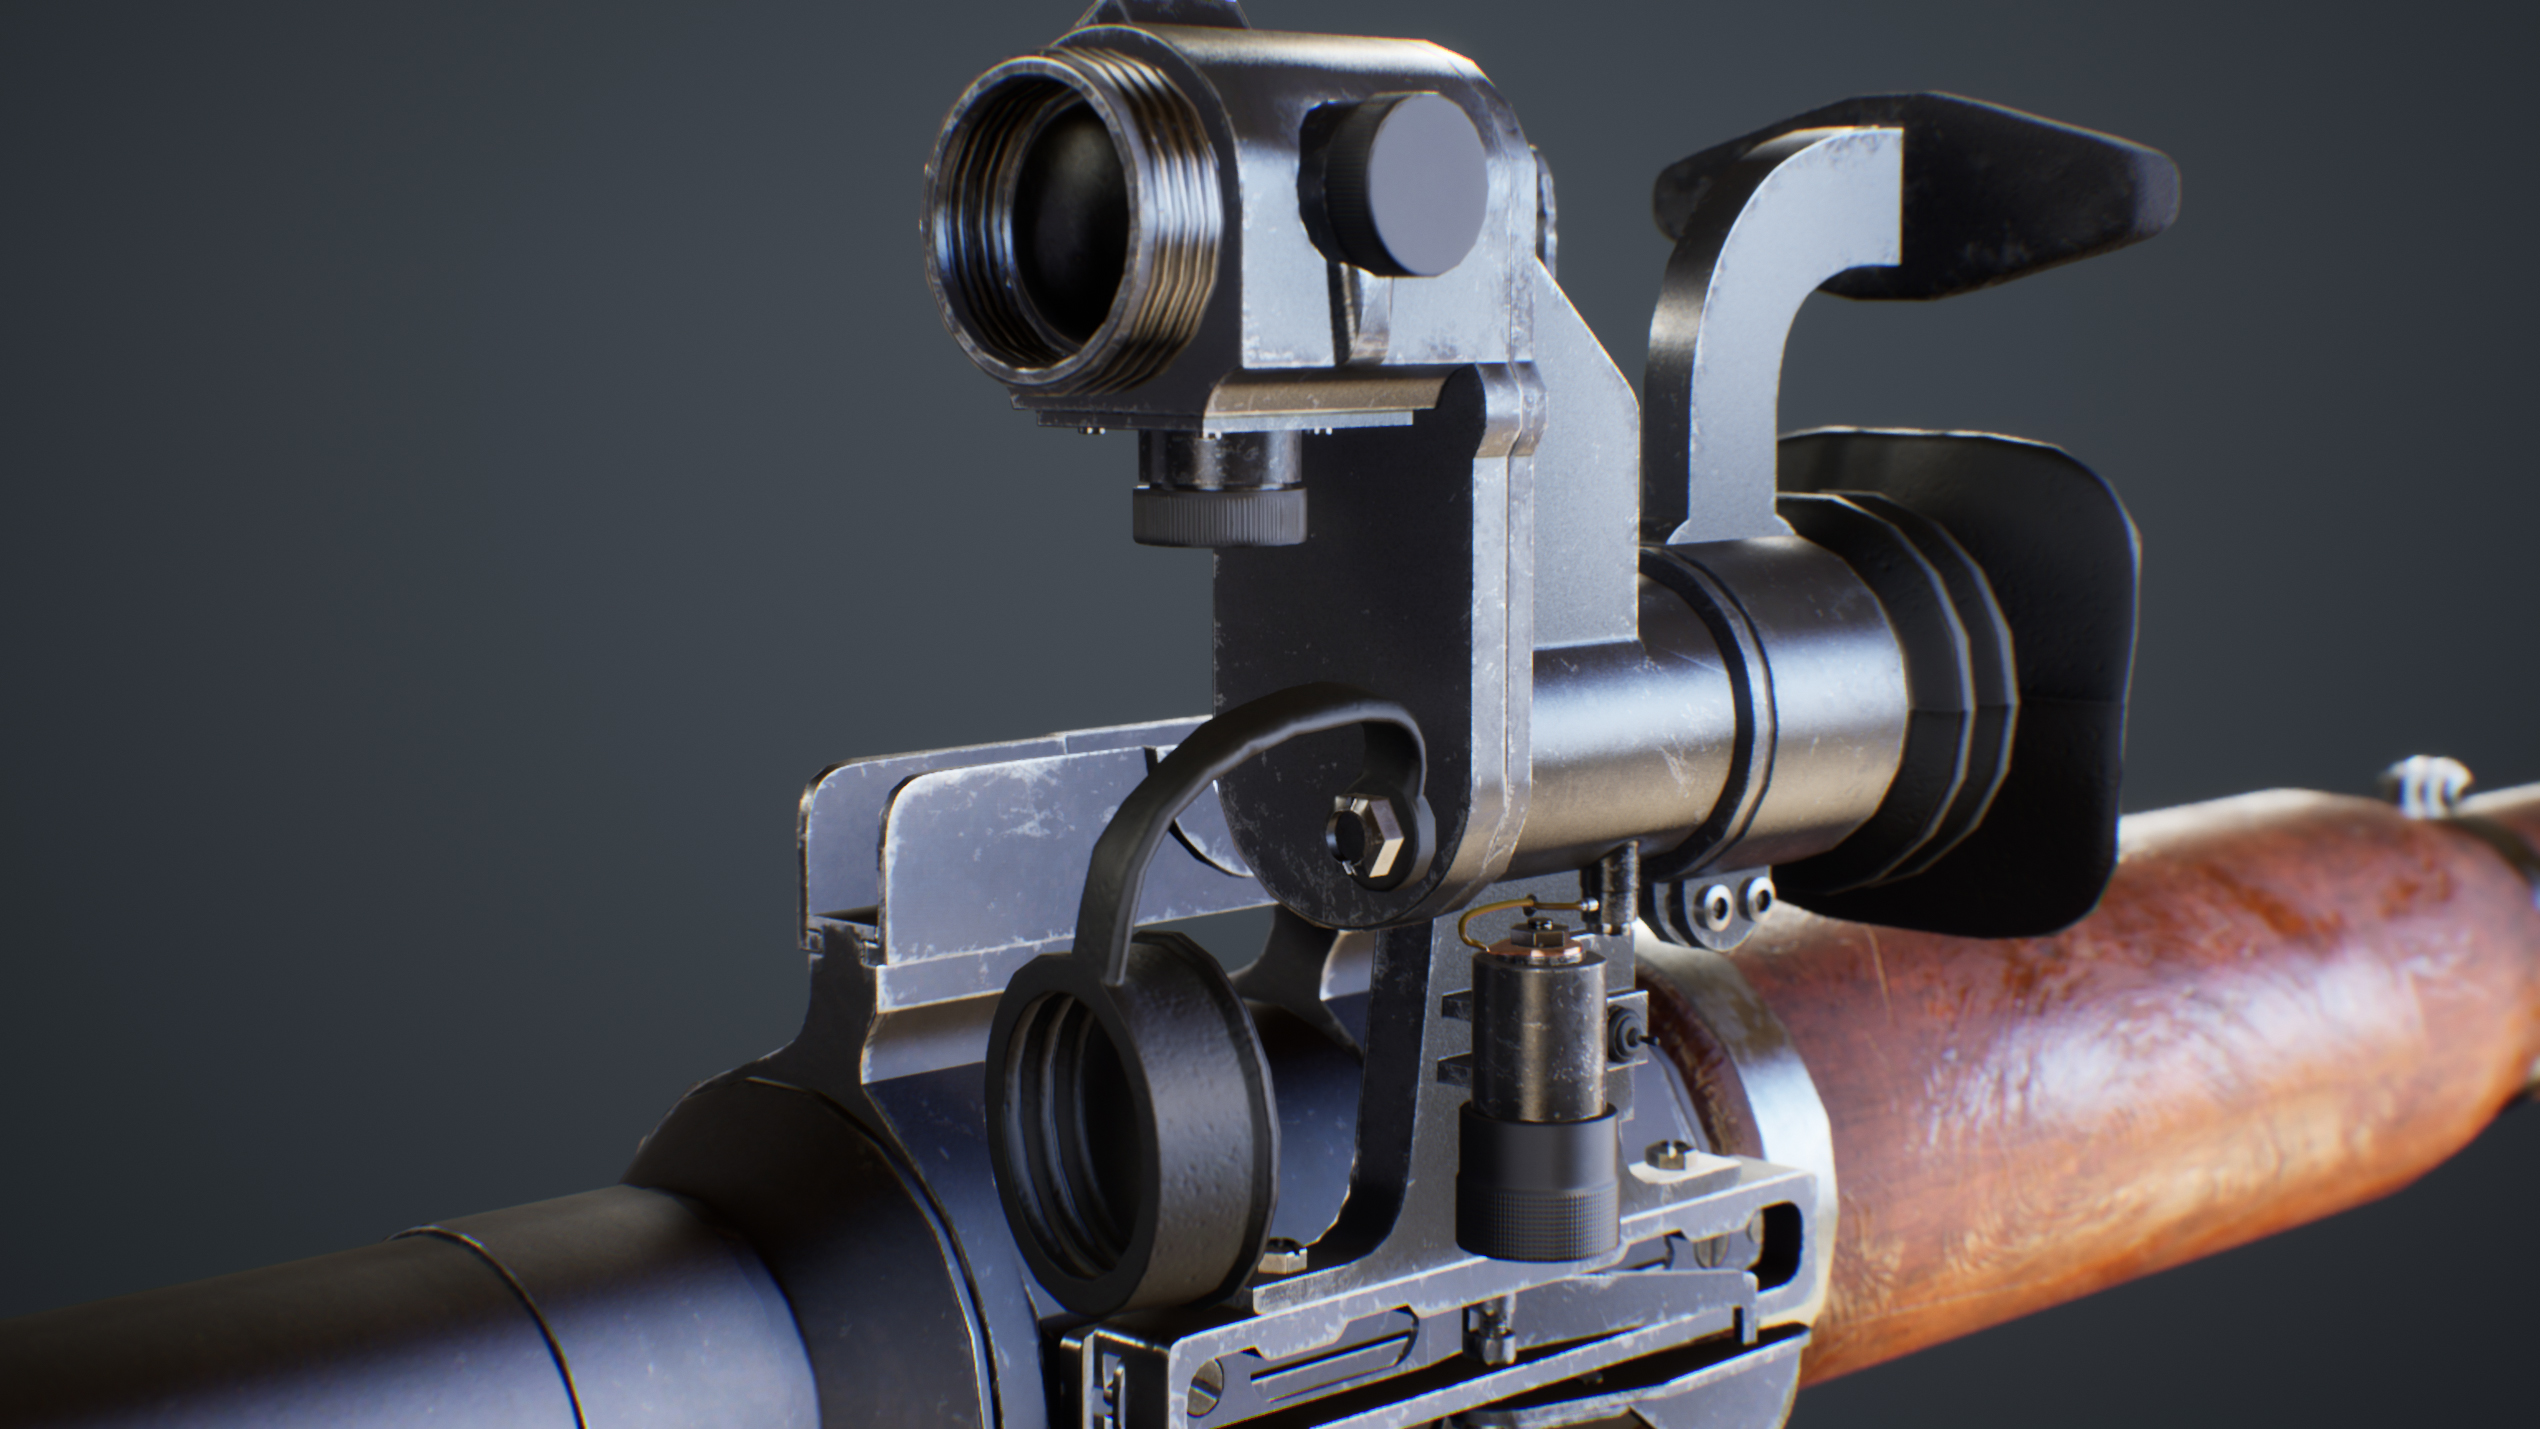 UE4 screenshot close up detailed front view of the PRG scope